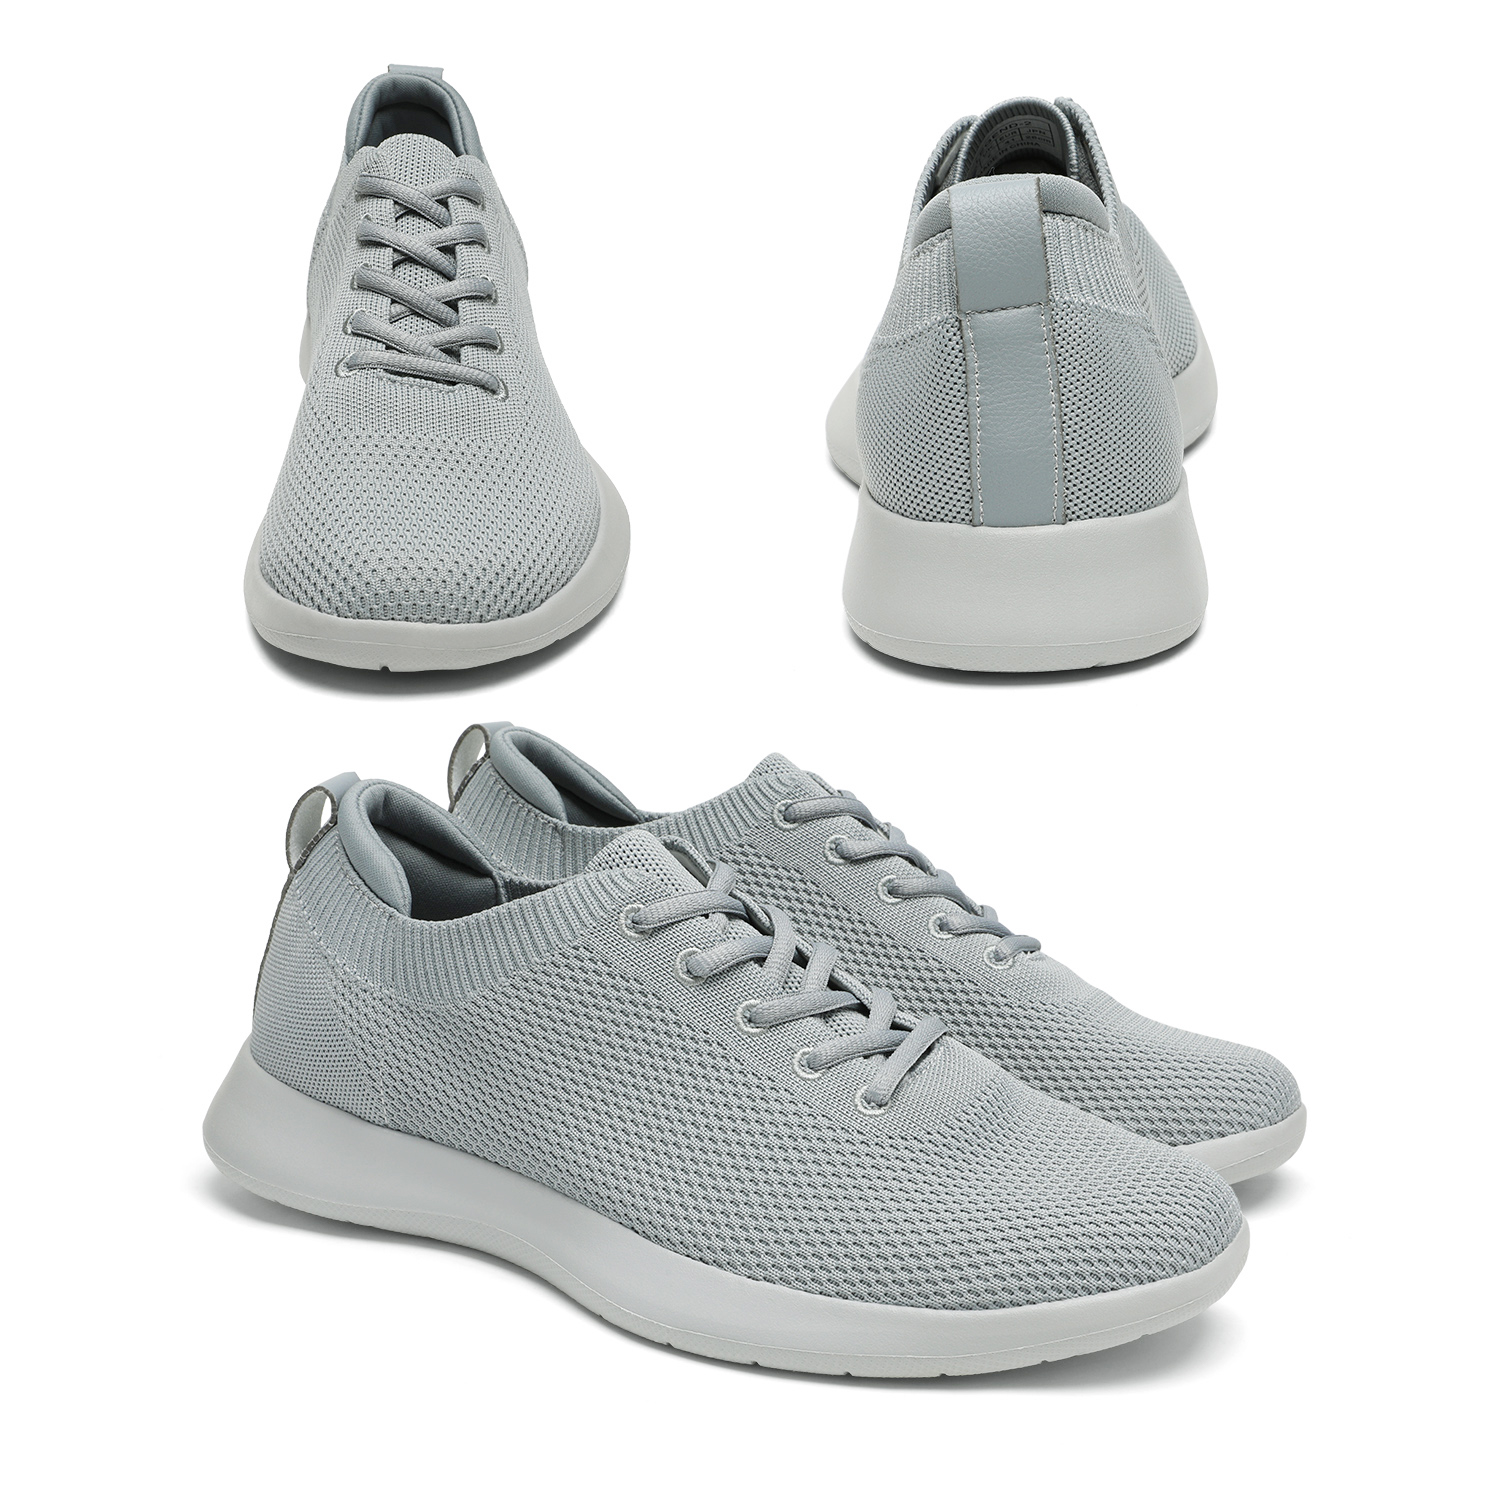 thumbnail 19 - Bruno Marc Mens Walking Shoes Breathable Fashion Sneaker Casual Shoe Size 6.5-13